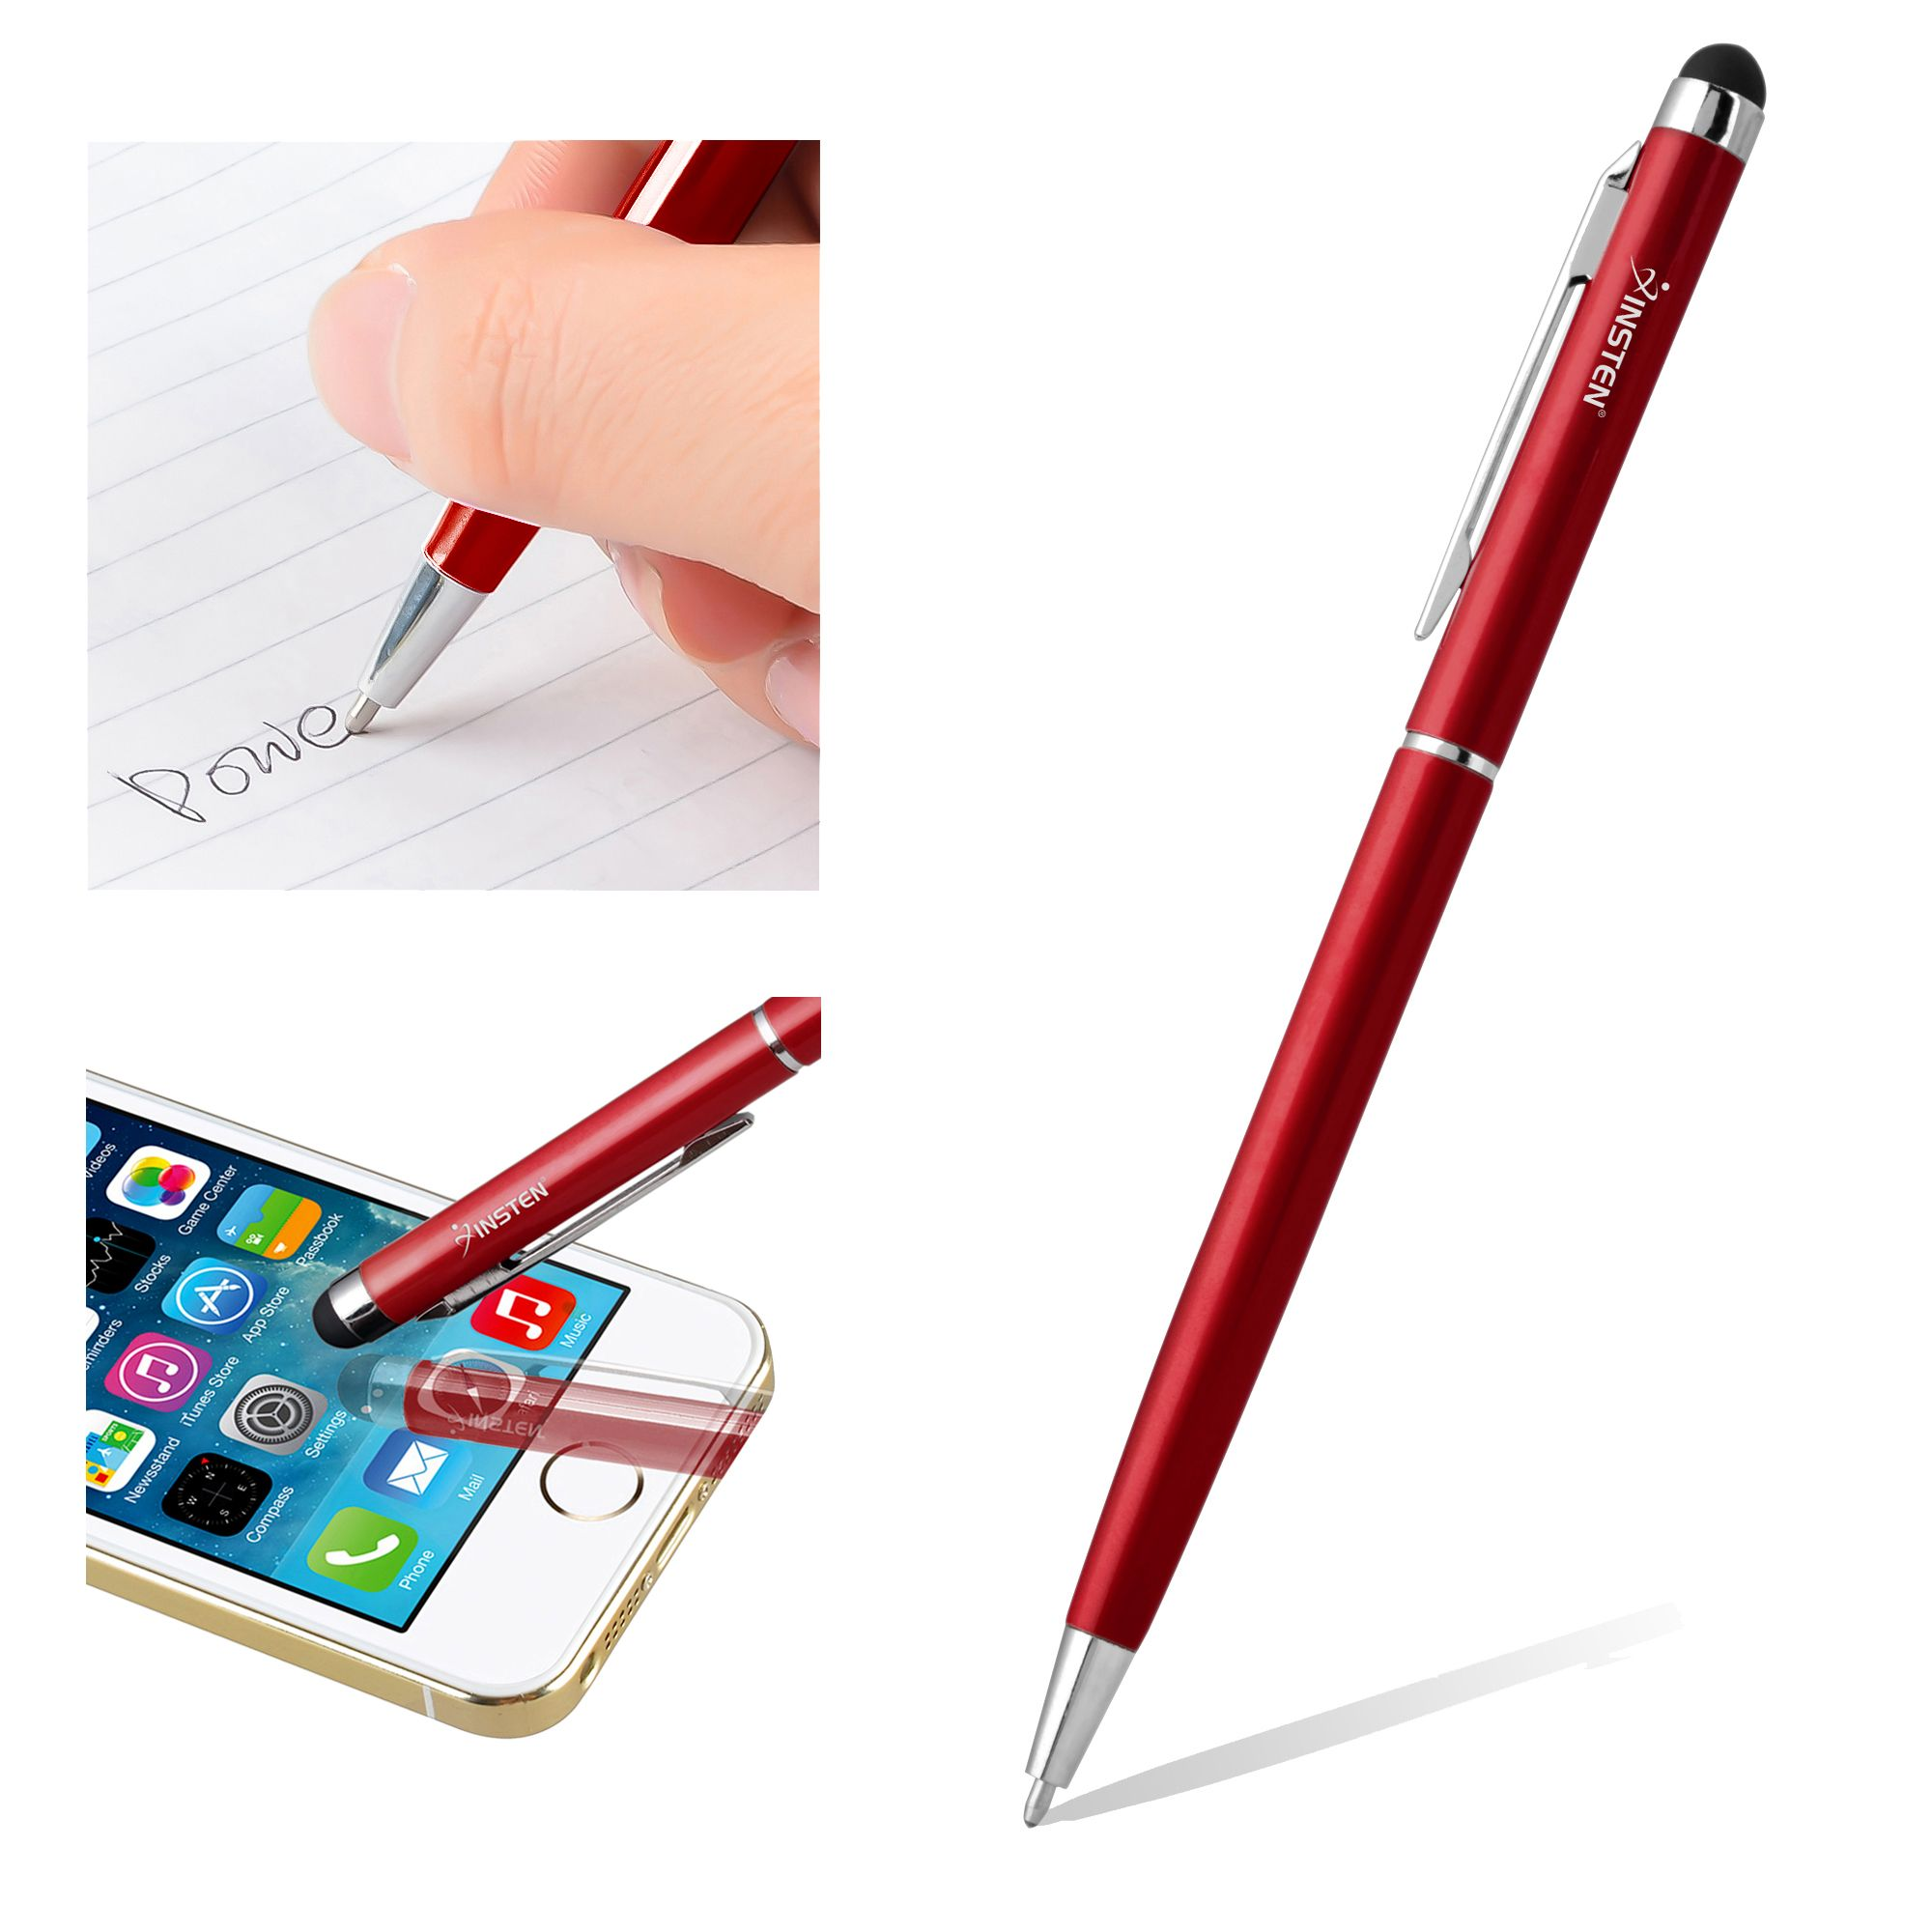 2 Pack Insten Red 2-in-1 Capacitive Stylus with Ball Point Pen for Samsung  Galaxy Tab E A S2 S3 4 3 View Tab LG G Pad Huawei Media Ematic RCA Lenovo